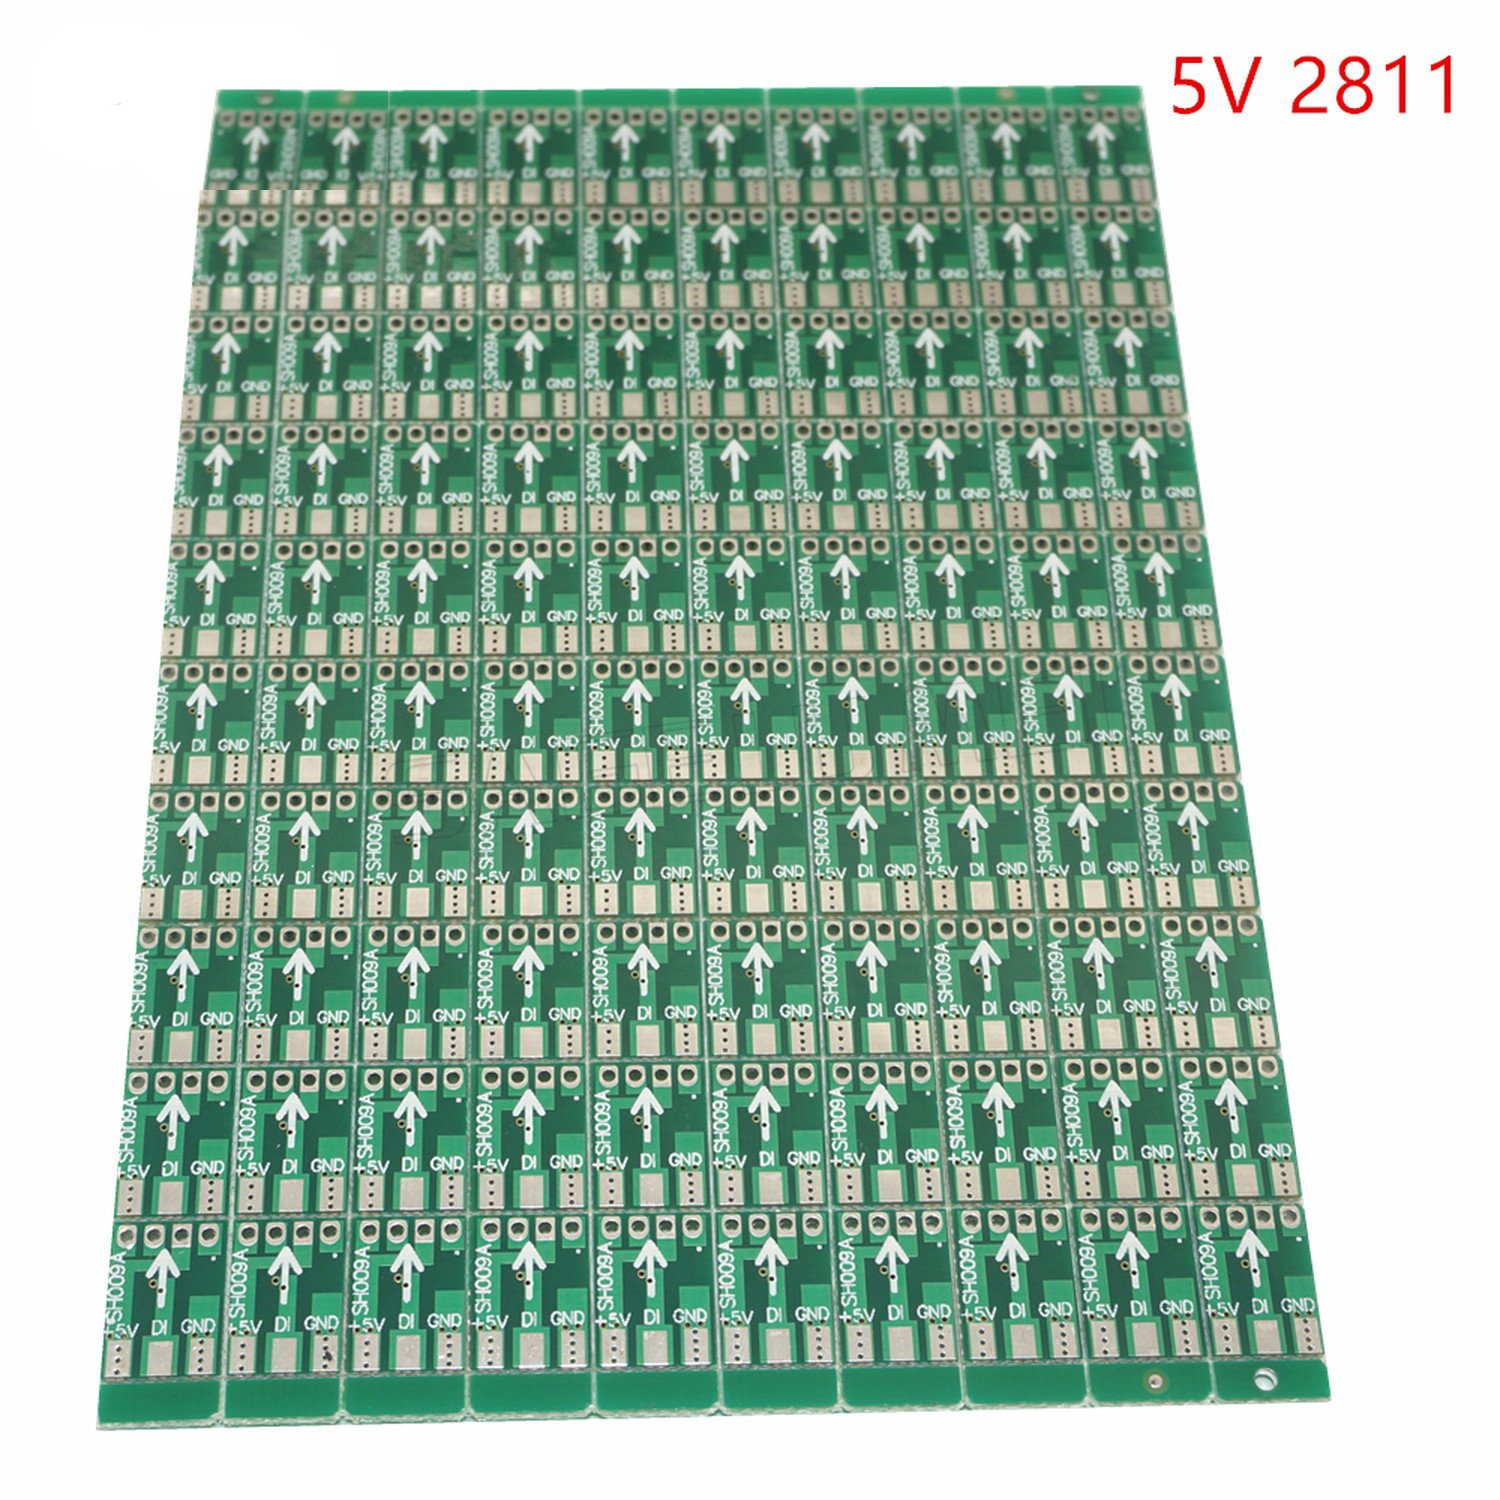 Processes 100pcs Pack Dc5v Dc12v Ws2811 Ic Led Circuit Light Emitting Diode Boardpcb Modules Boards And Board Pcb Rgb Pixel Module2811 Home Improvement